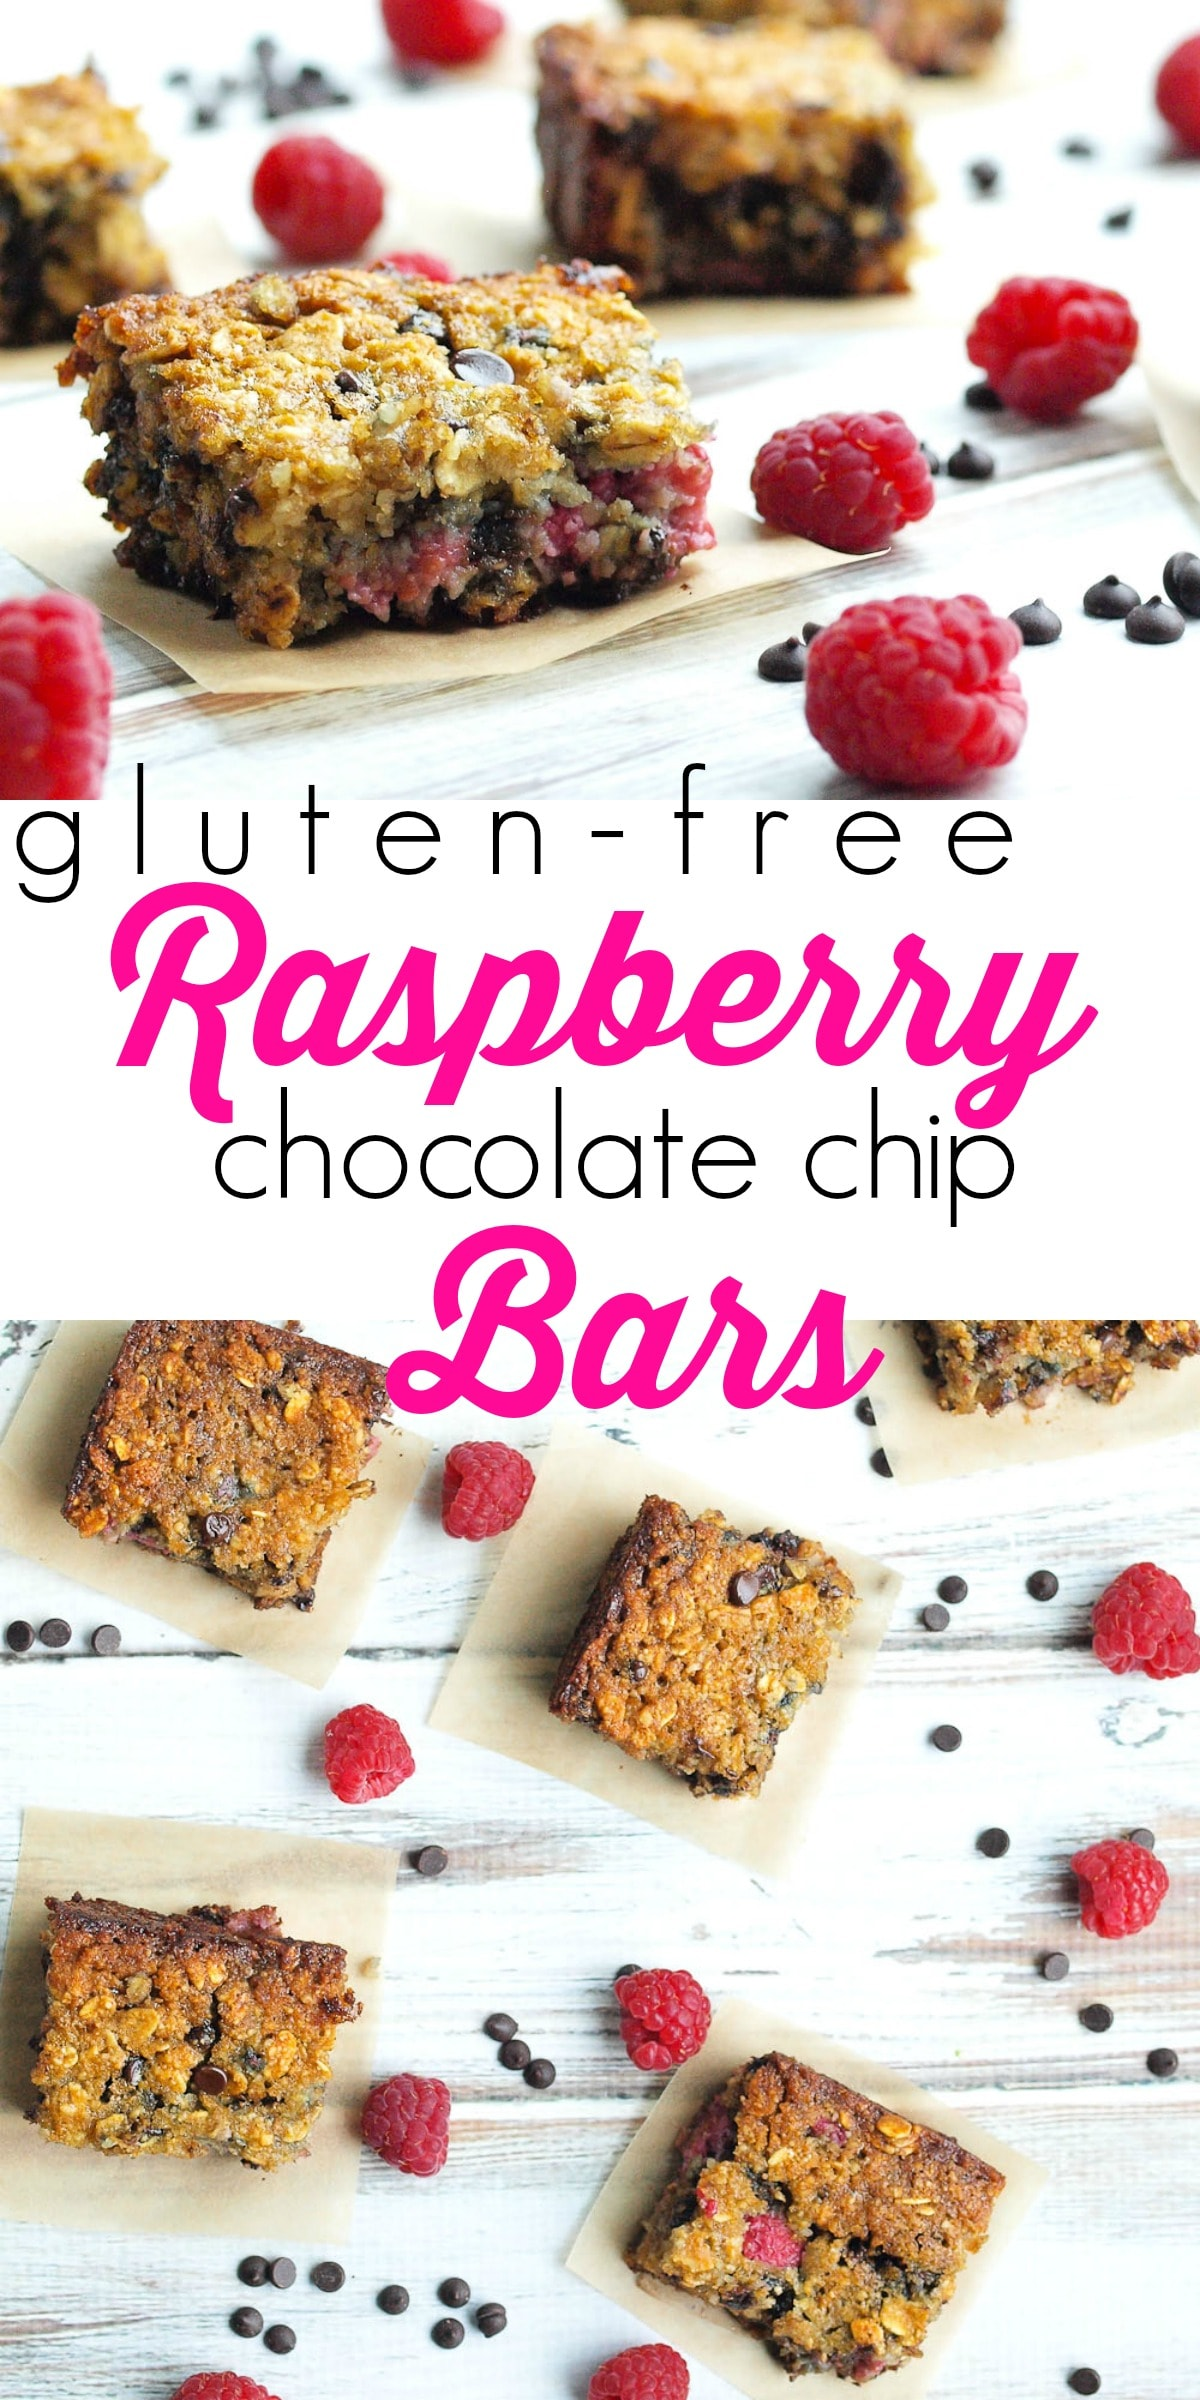 Gluten-free and dairy-free Raspberry Chocolate Chip Bars. These ...